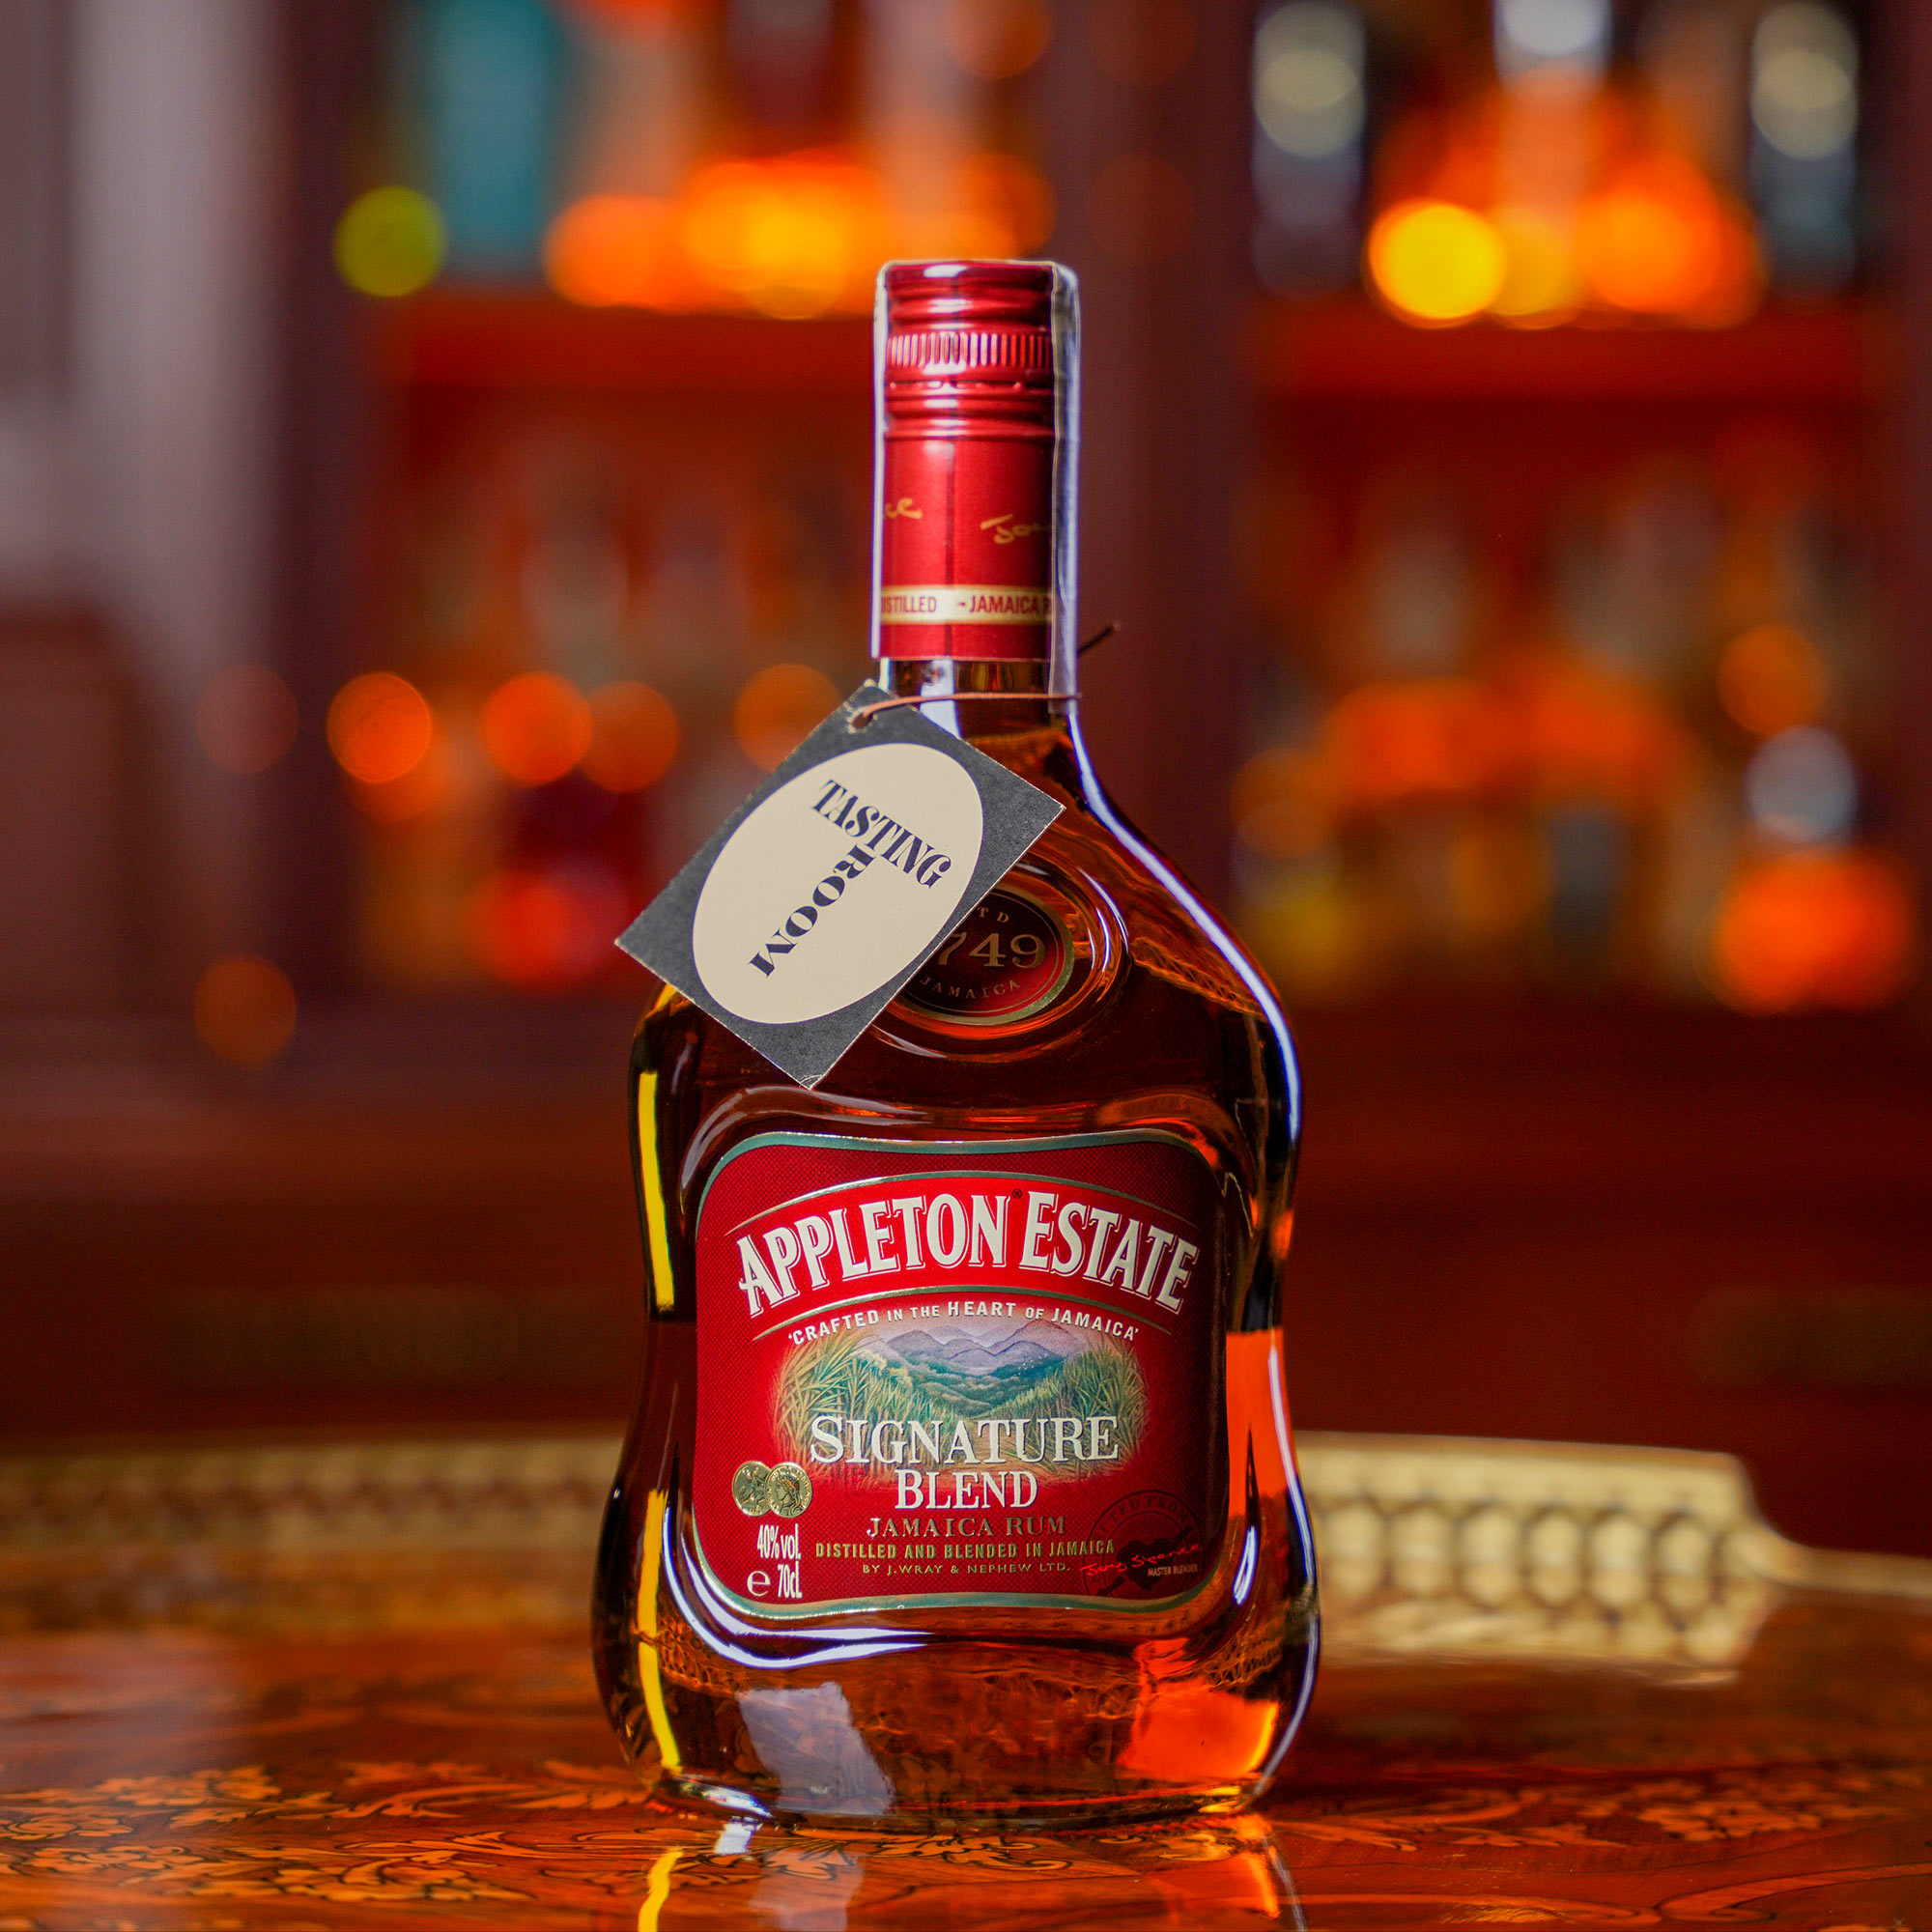 Appleton Estate Signature Blend /Апълтън или Епълтън Естейт Сигничър Бленд